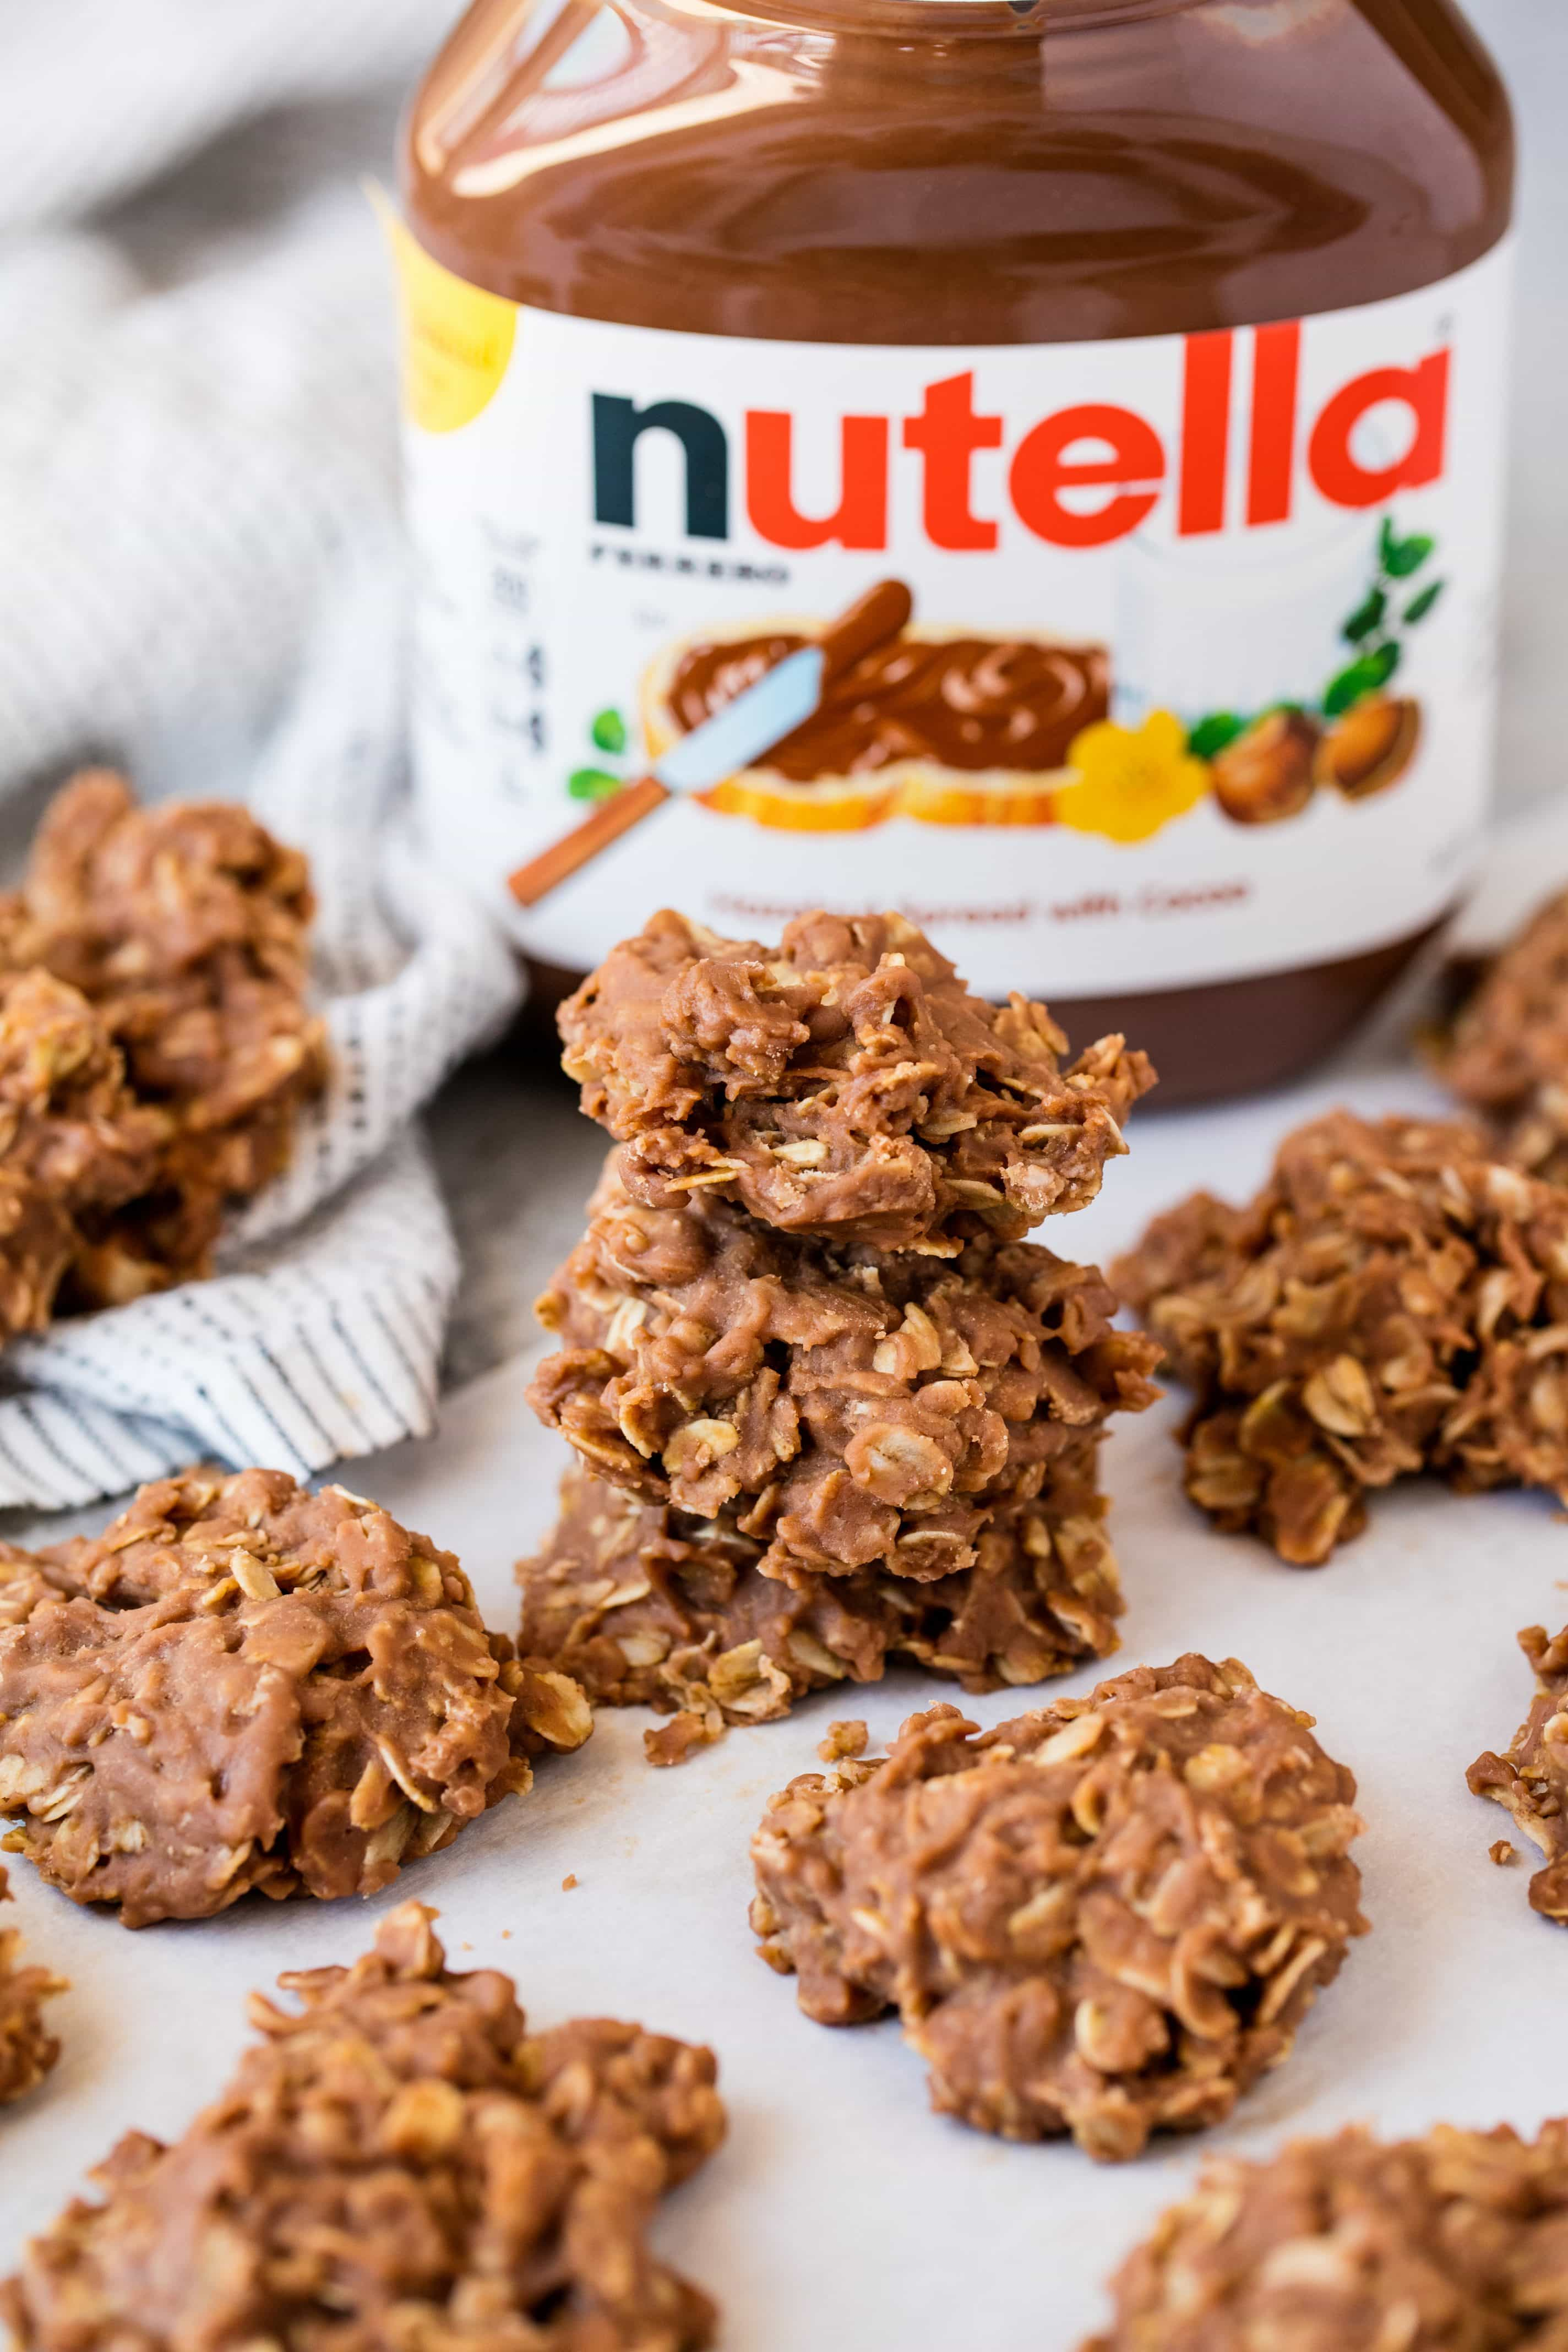 Classic no bake cookies get a Nutella twist in these Peanut Butter Nutella No Bake Cookies. Nutella lovers will go crazy over these super easy cookies.